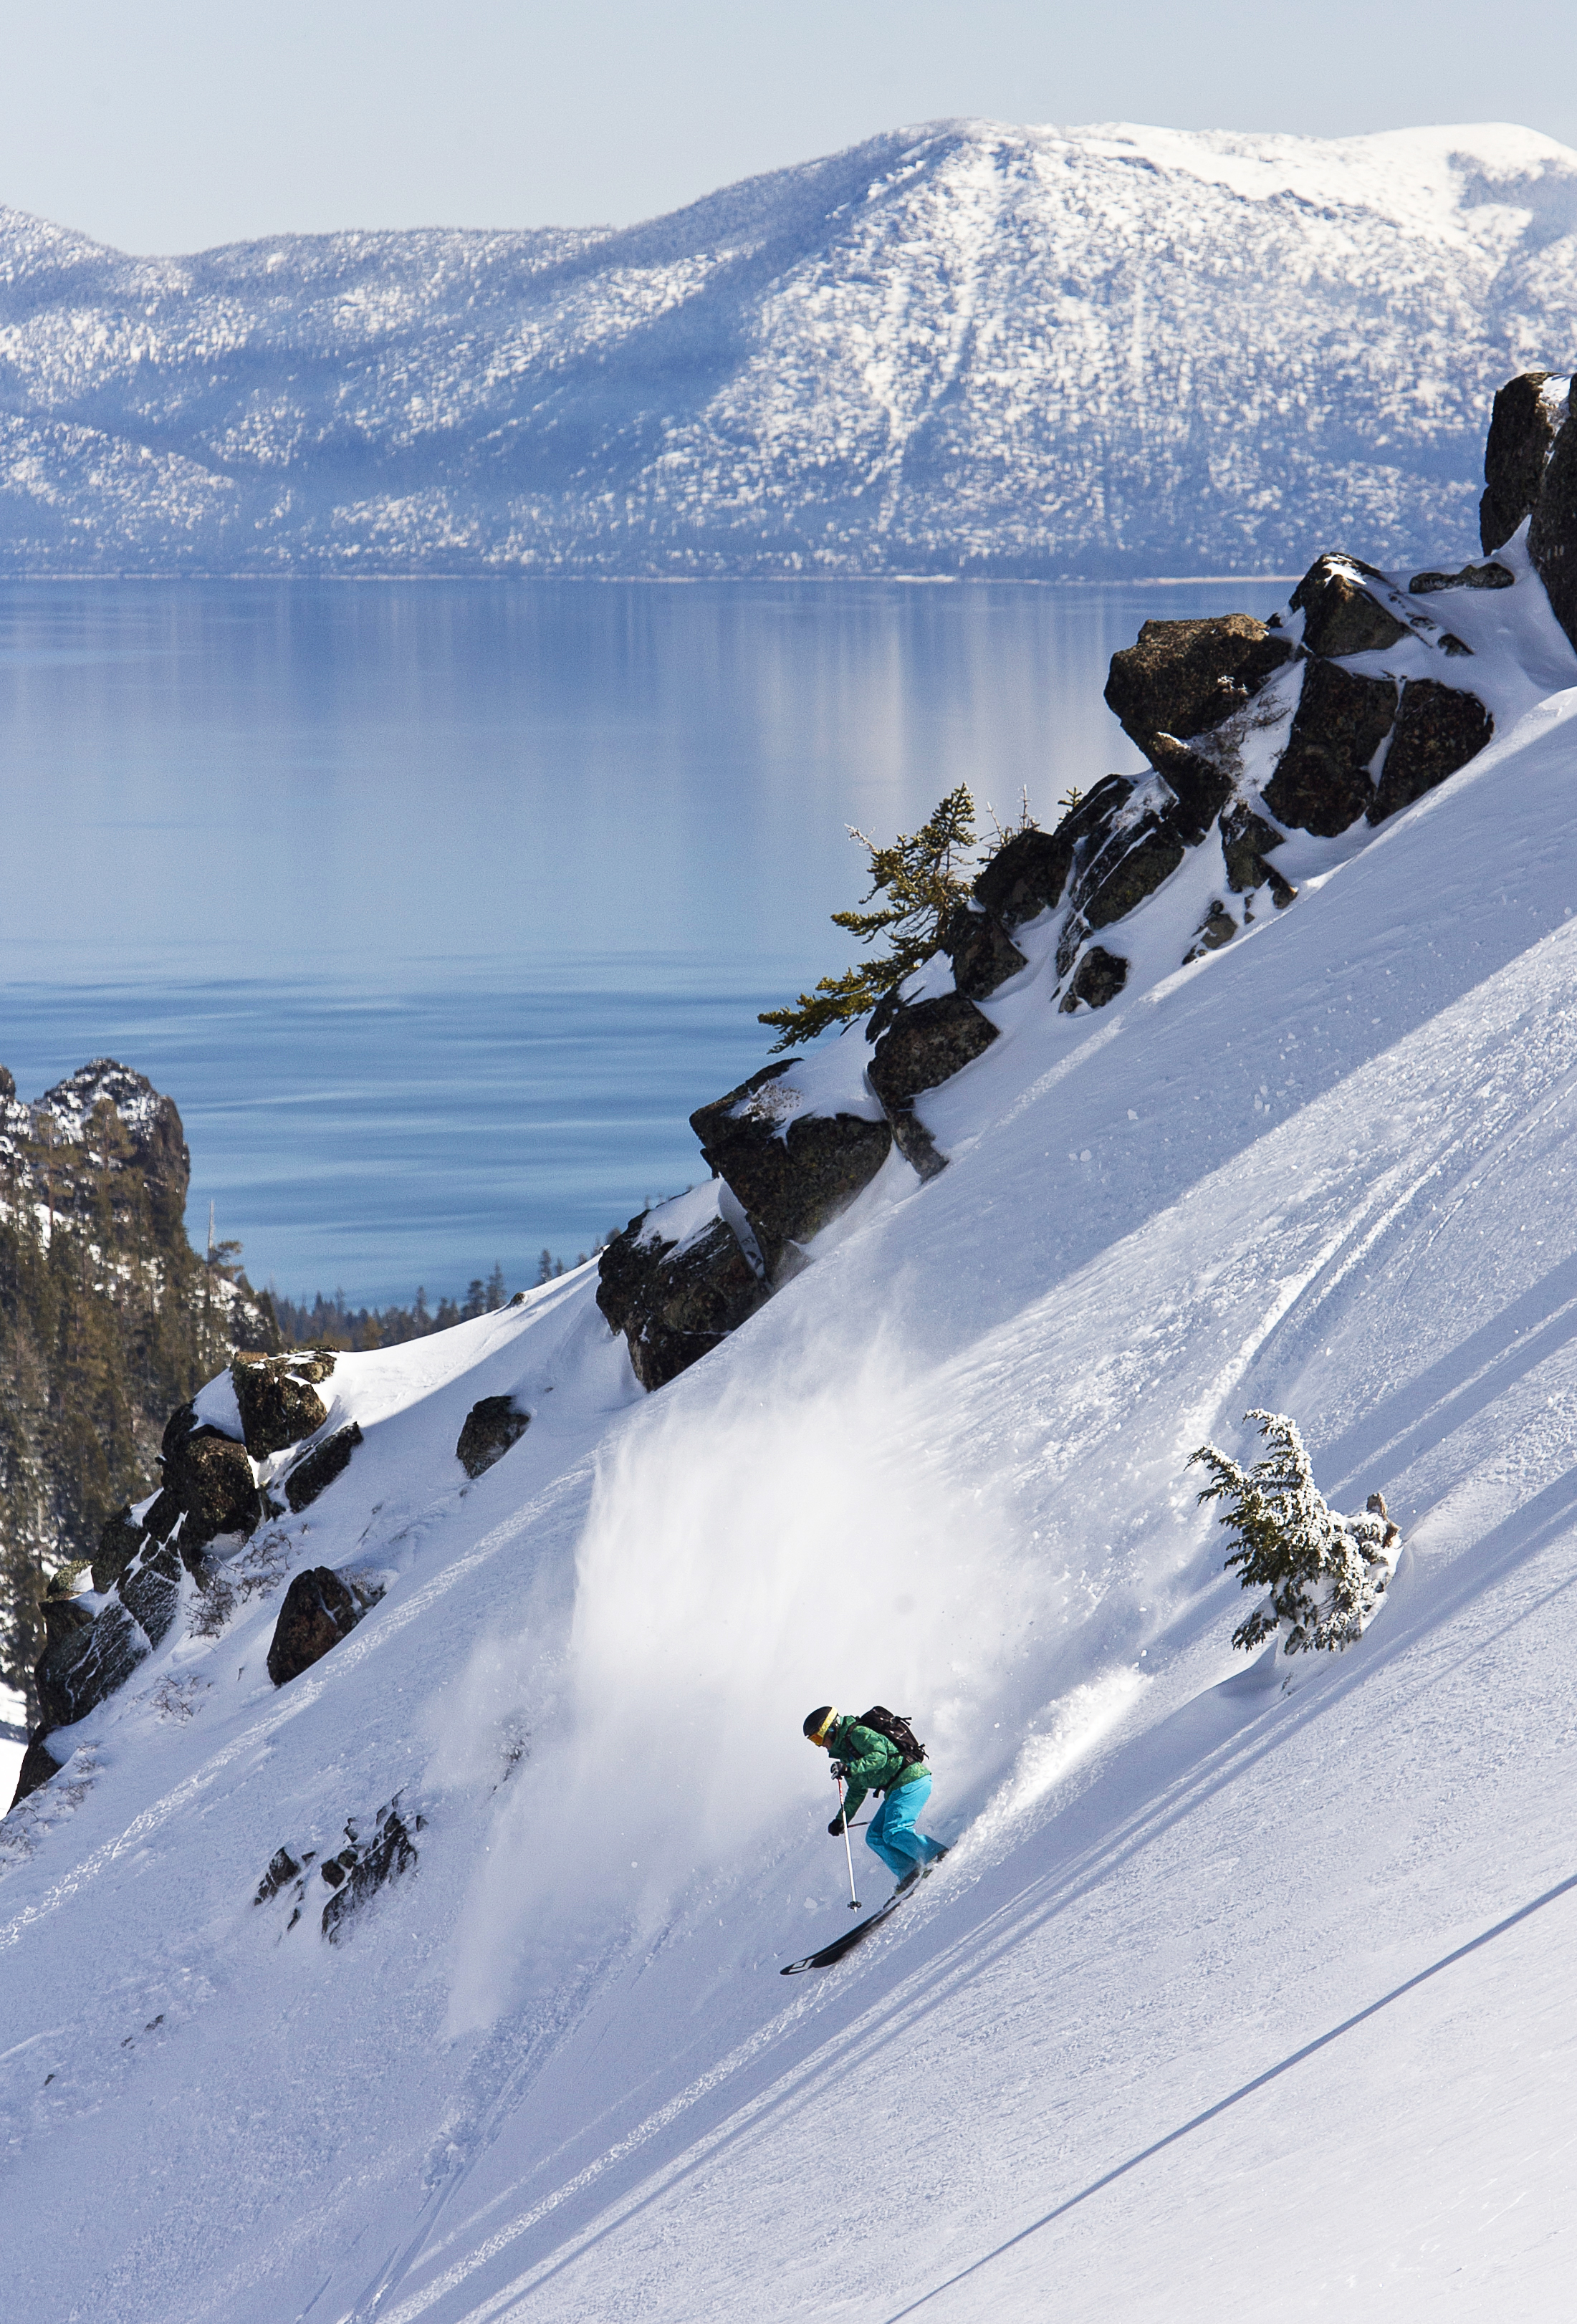 Photograph of skier at Alpine Meadows